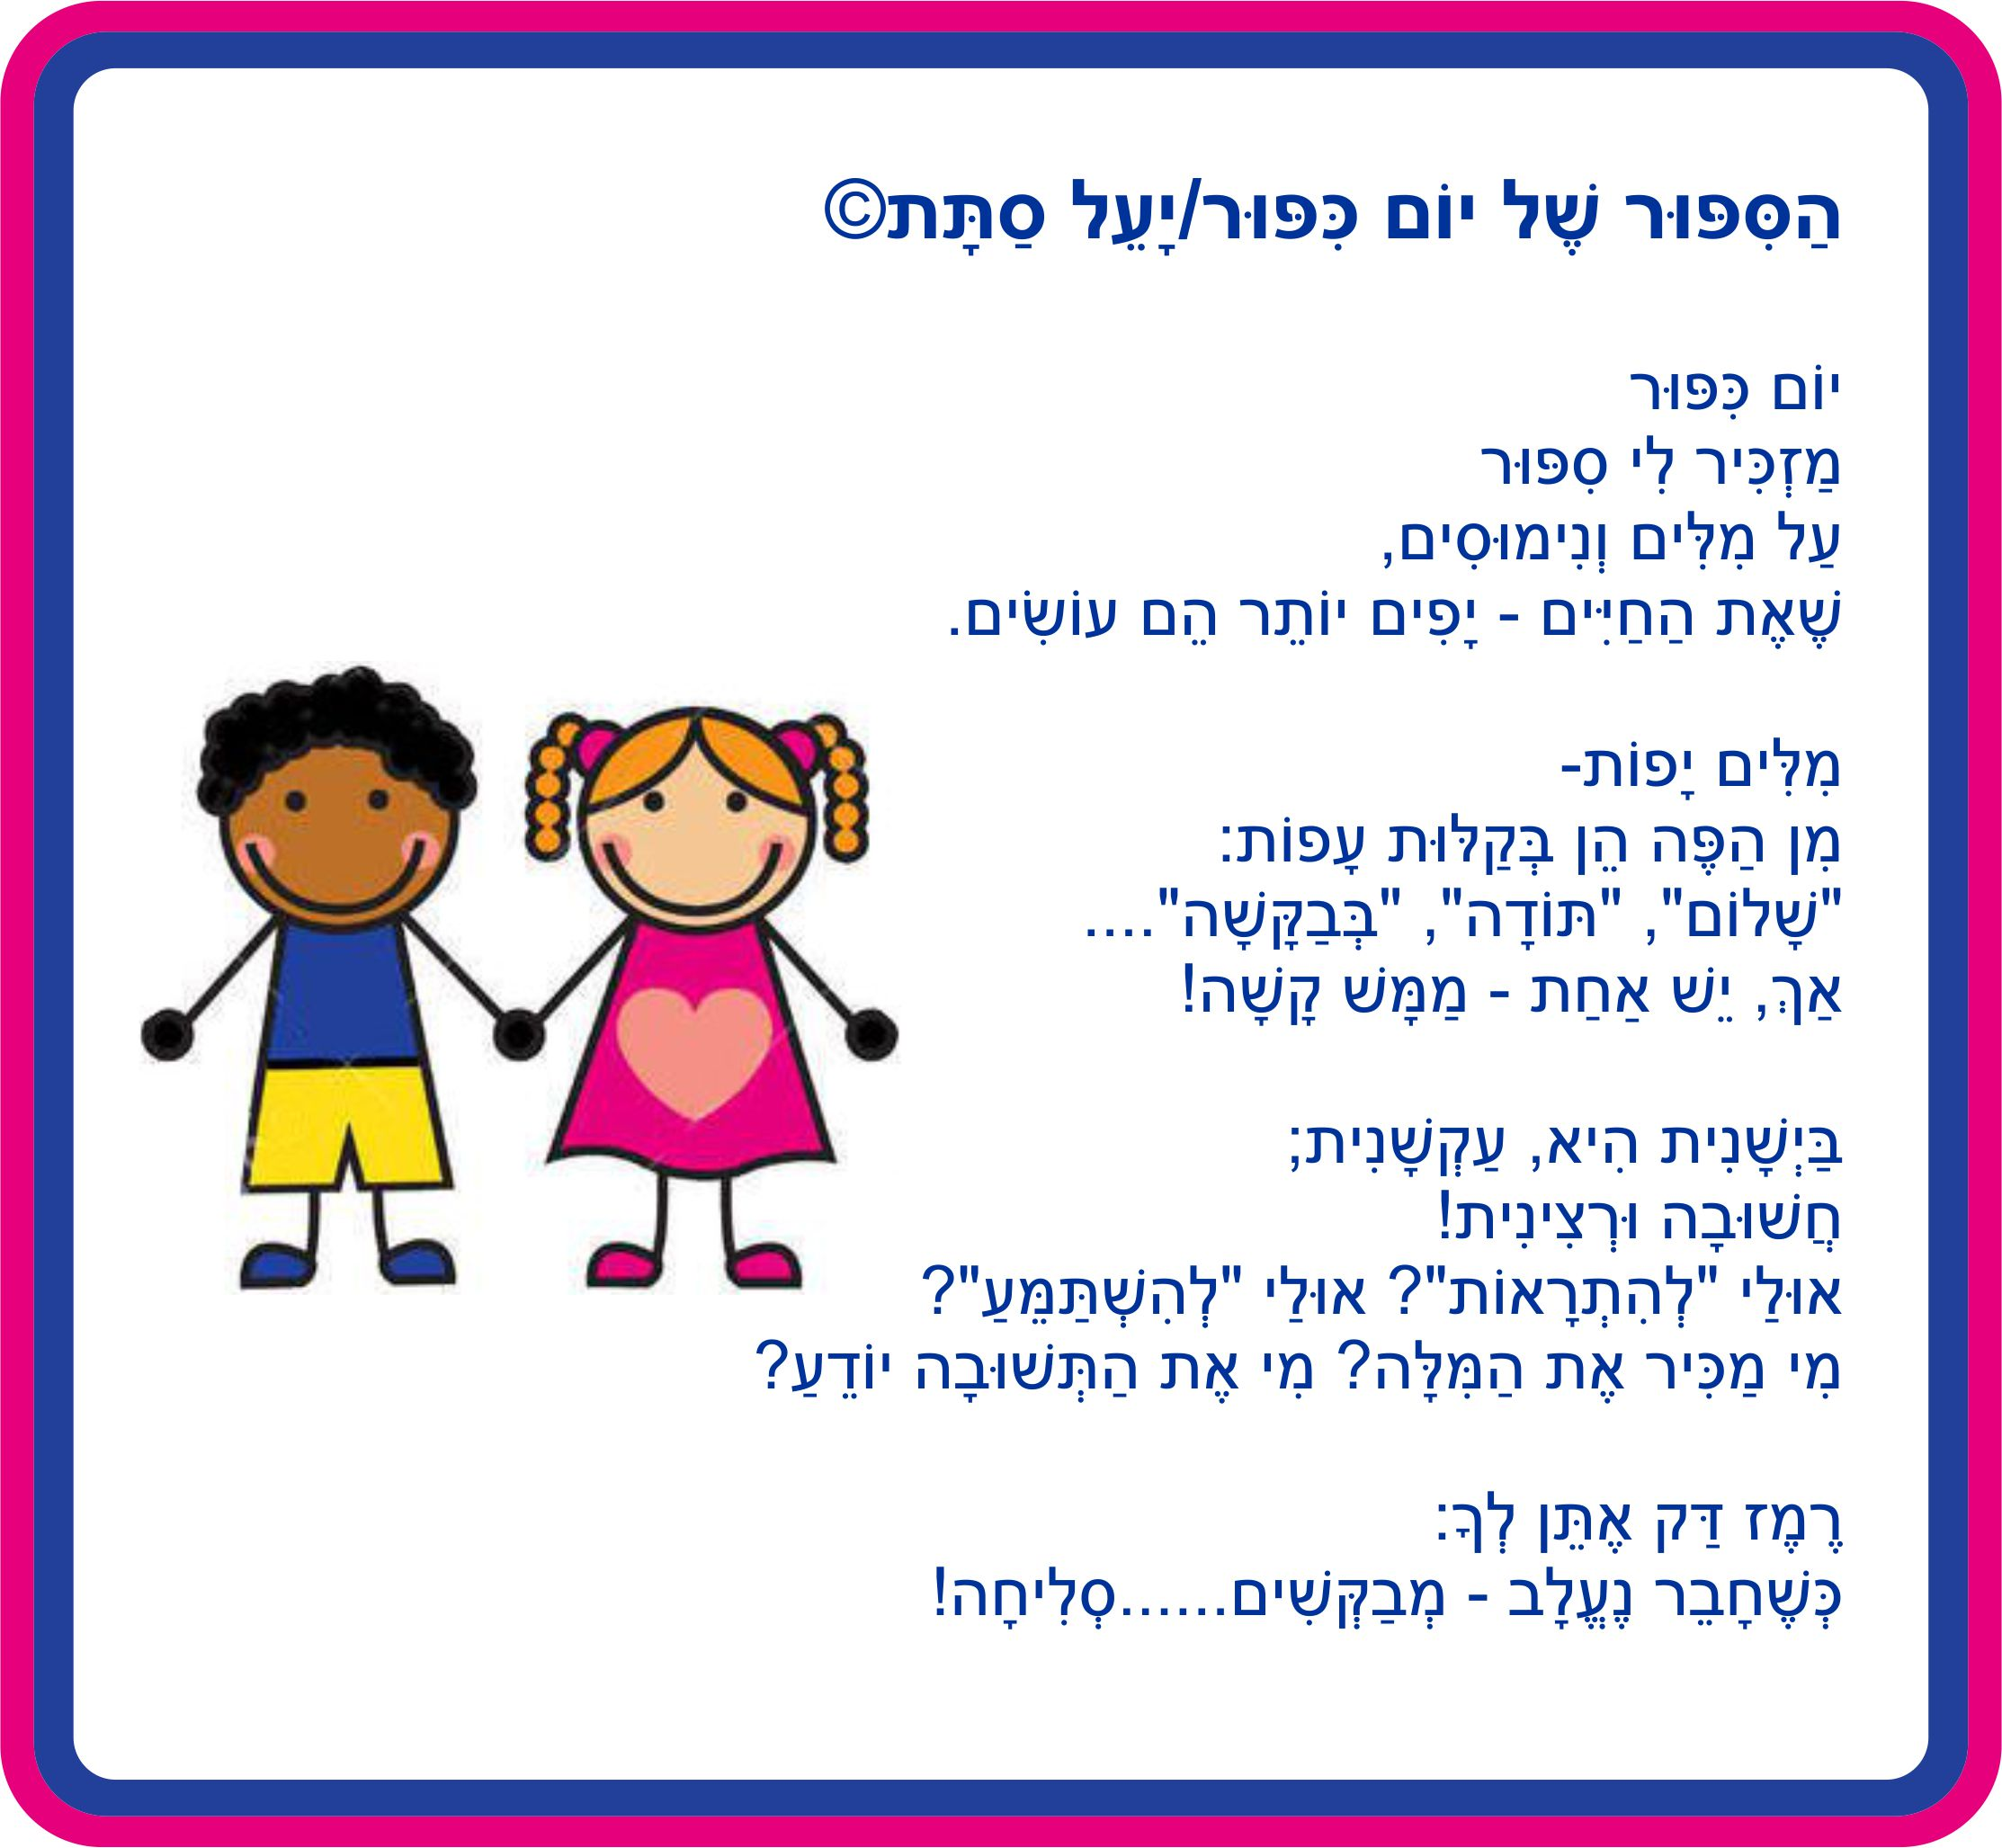 Artwork from the book - חגי תשרי / יעל סתת by Yael Satat - Illustrated by חיים סתת - Ourboox.com